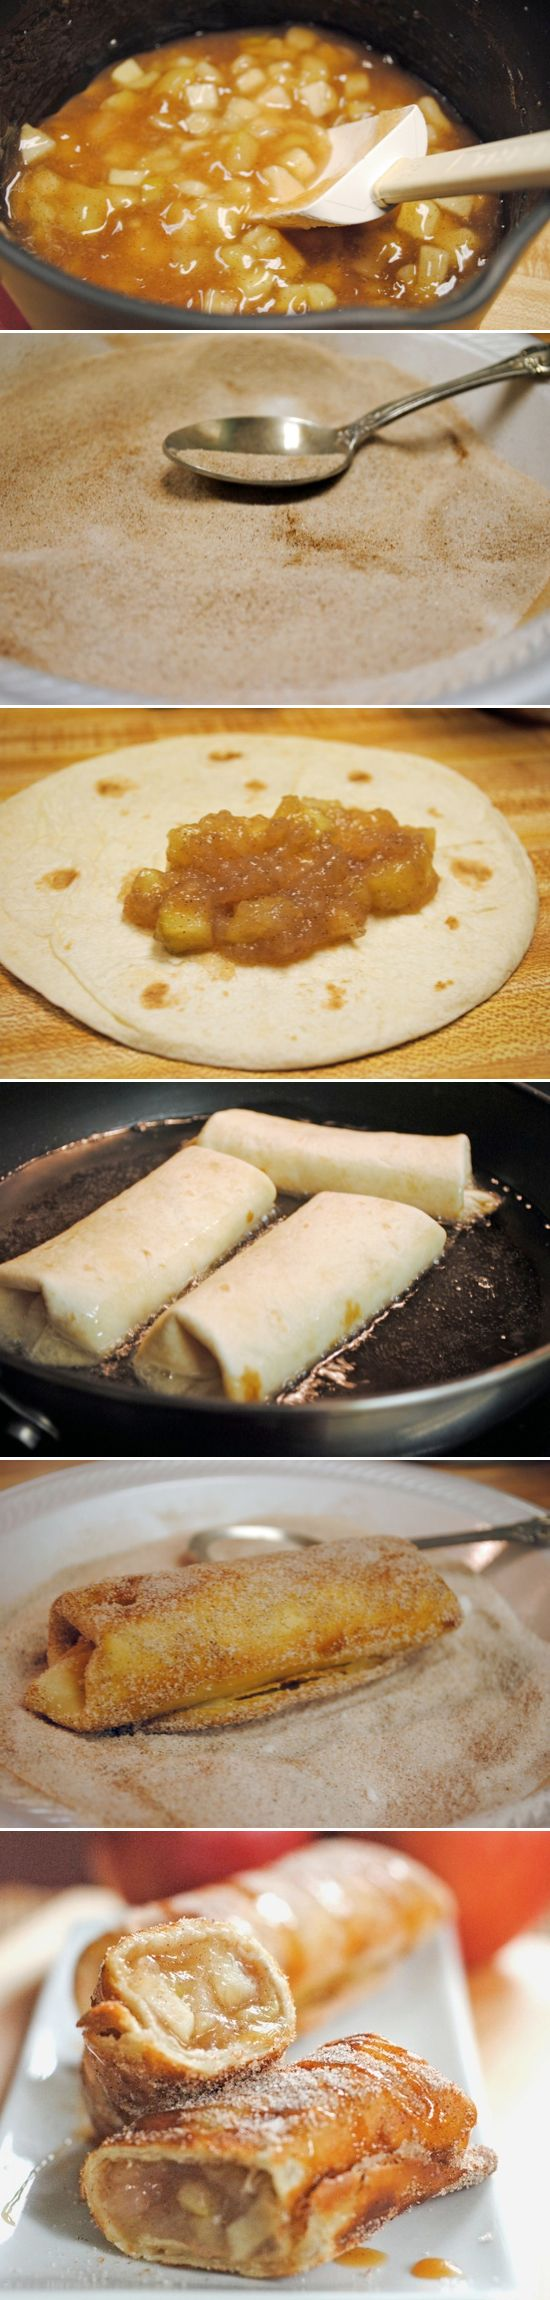 Cinnamon Apple Dessert Chimichangas